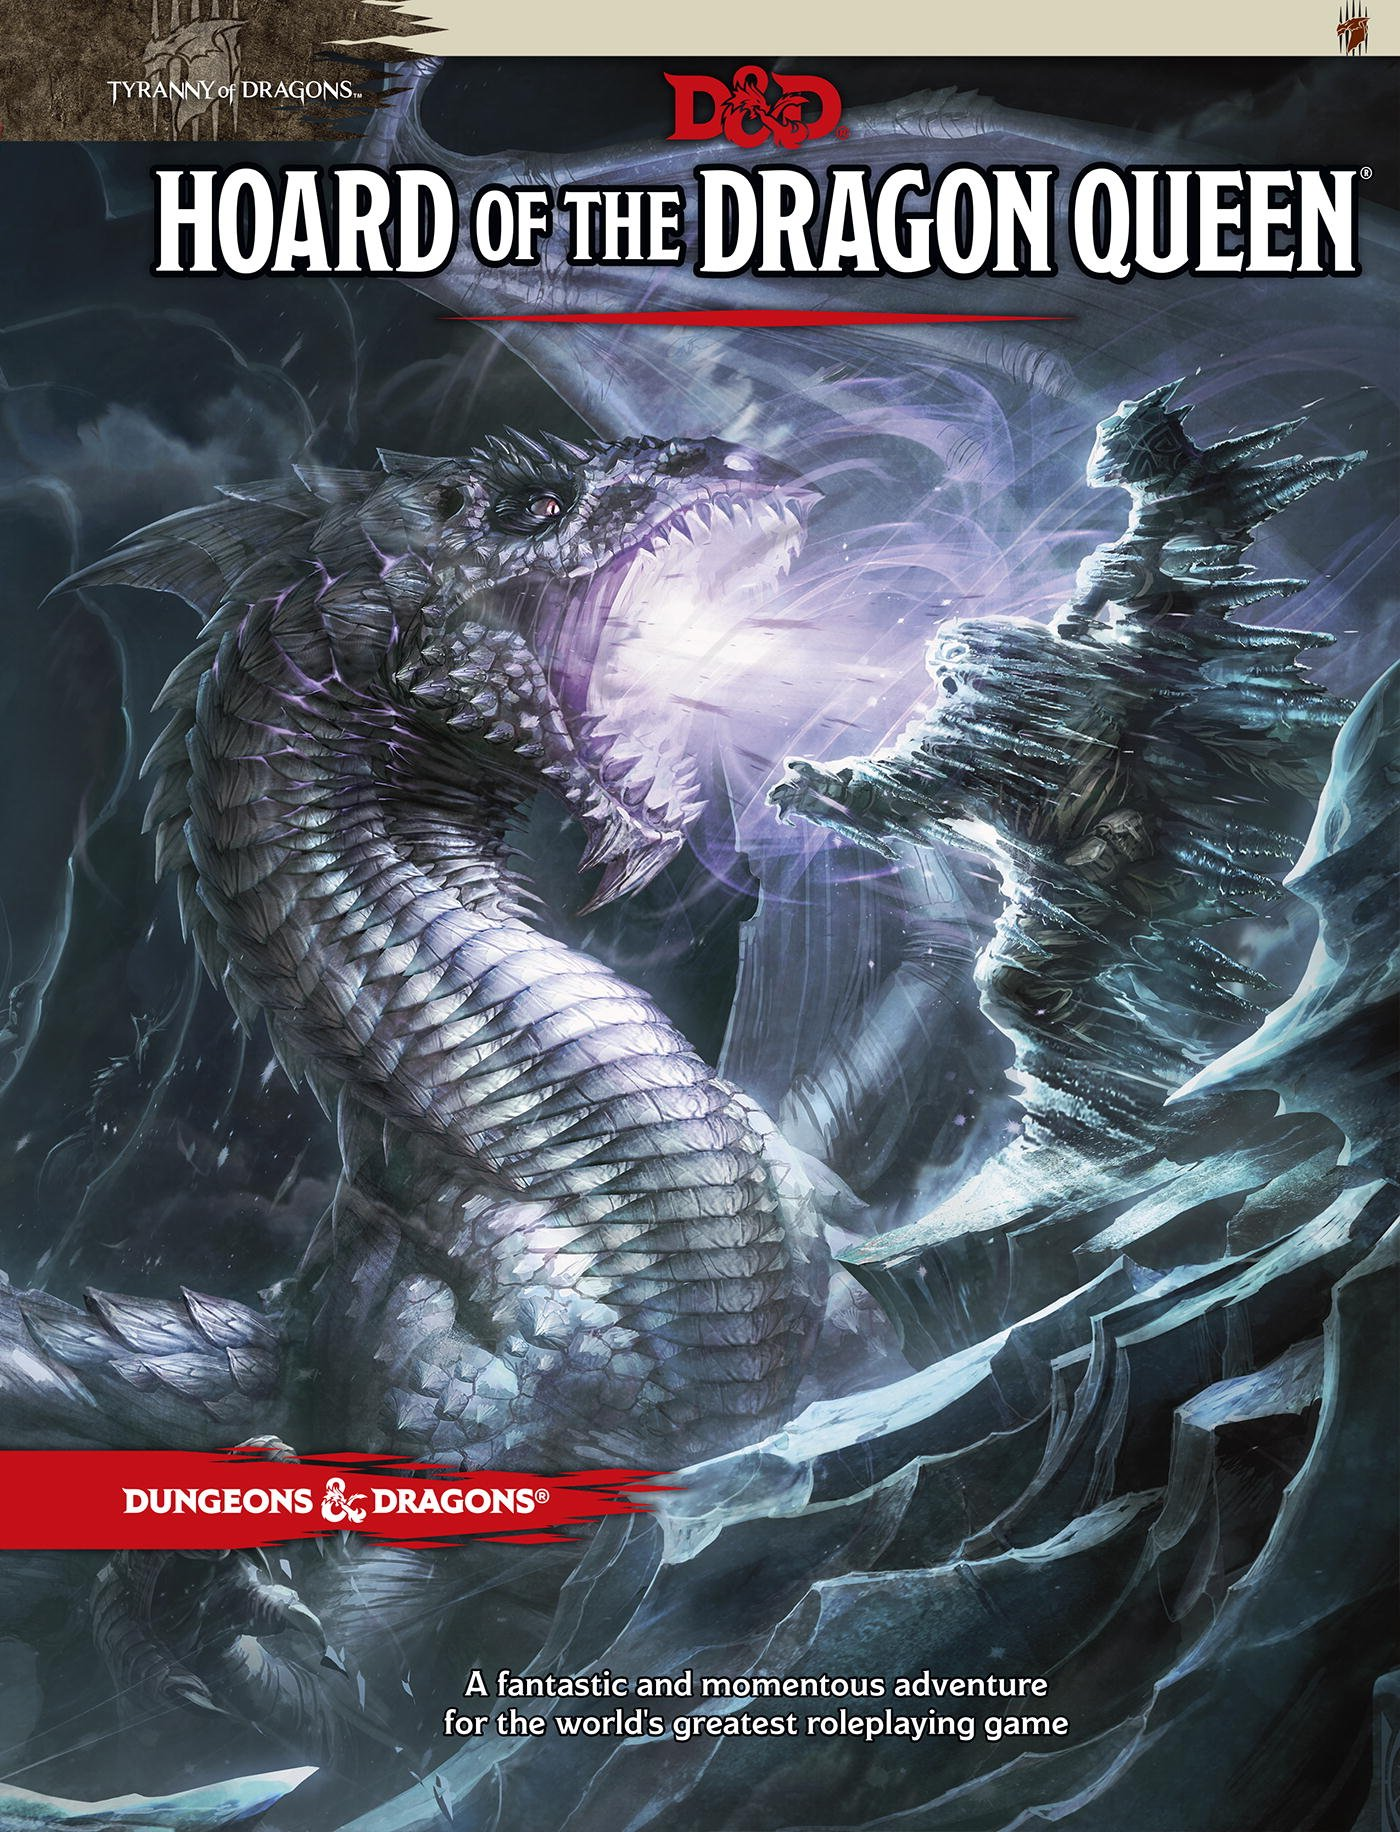 Hoard of the Dragon Queen (D&D Adventure) by Dungeons and Dragons (Image #1)